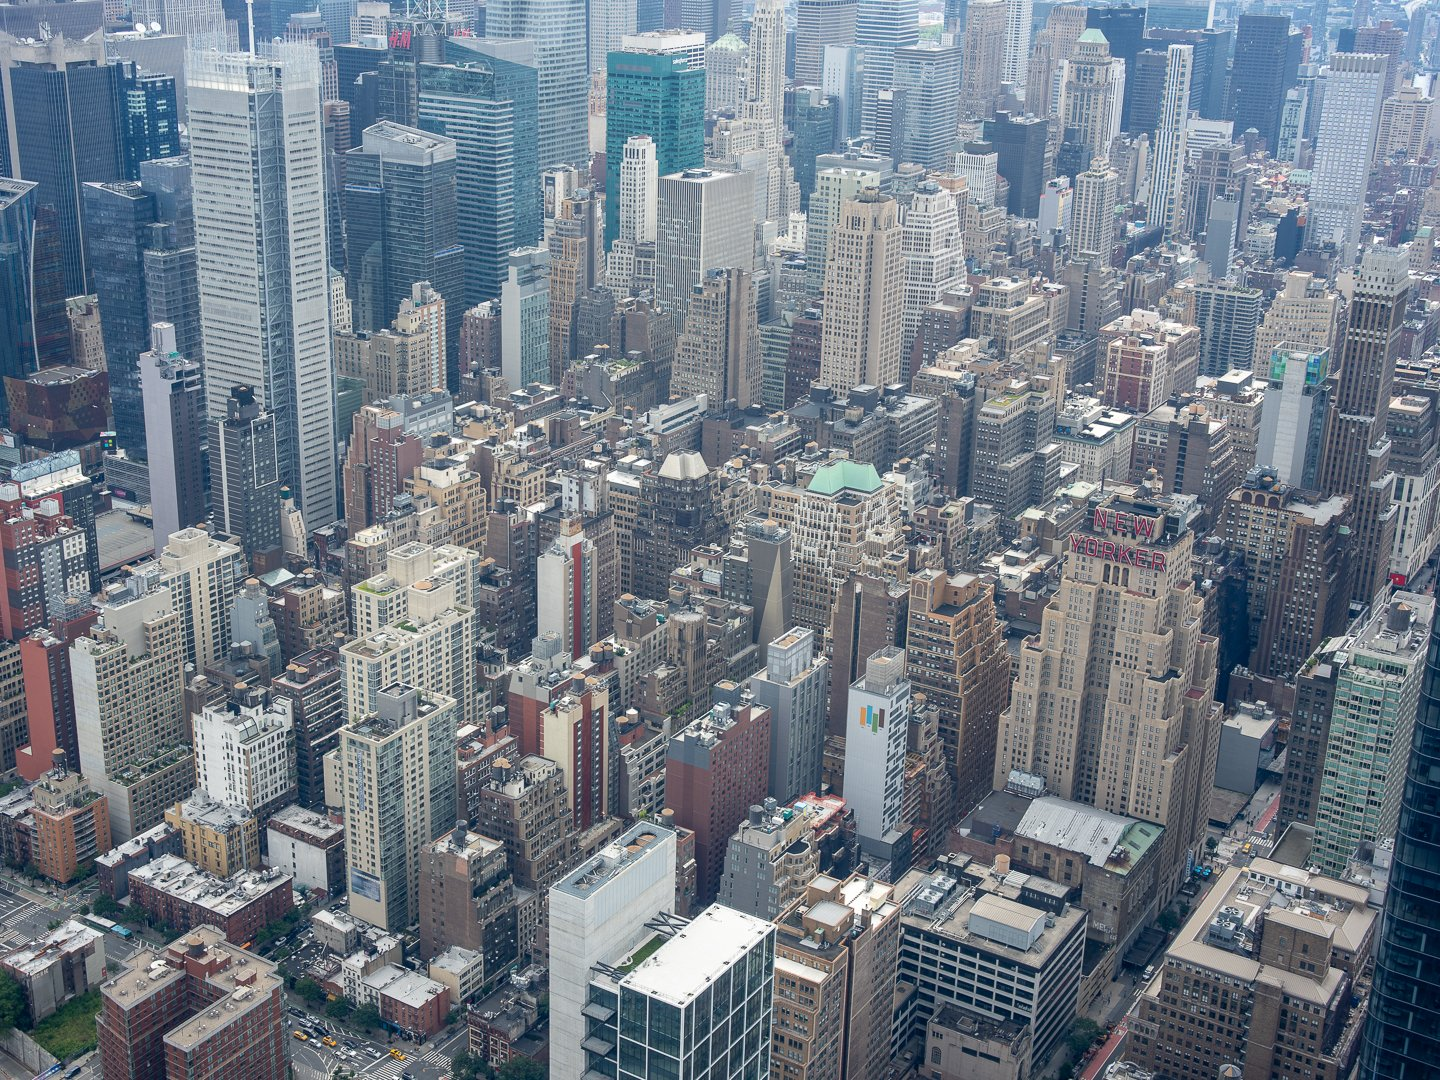 View of New York City skyline from The Edge